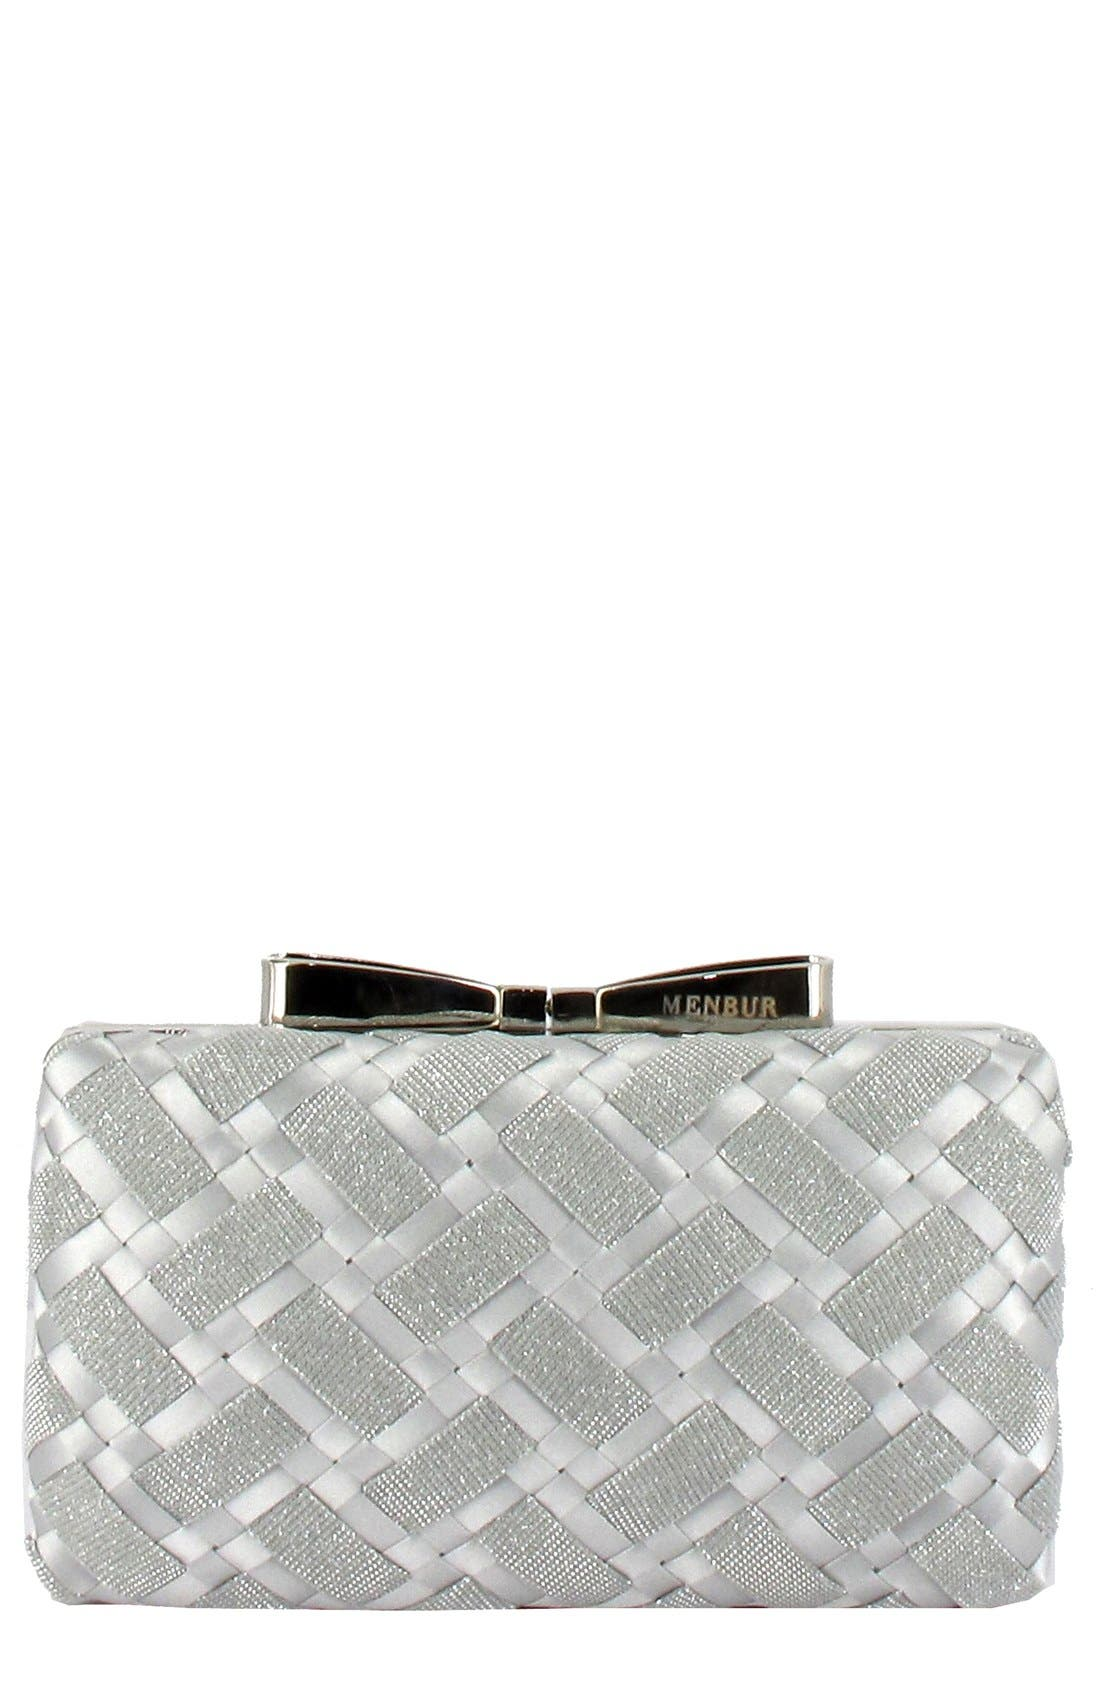 Main Image - Menbur Woven Box Clutch with Bow Clasp